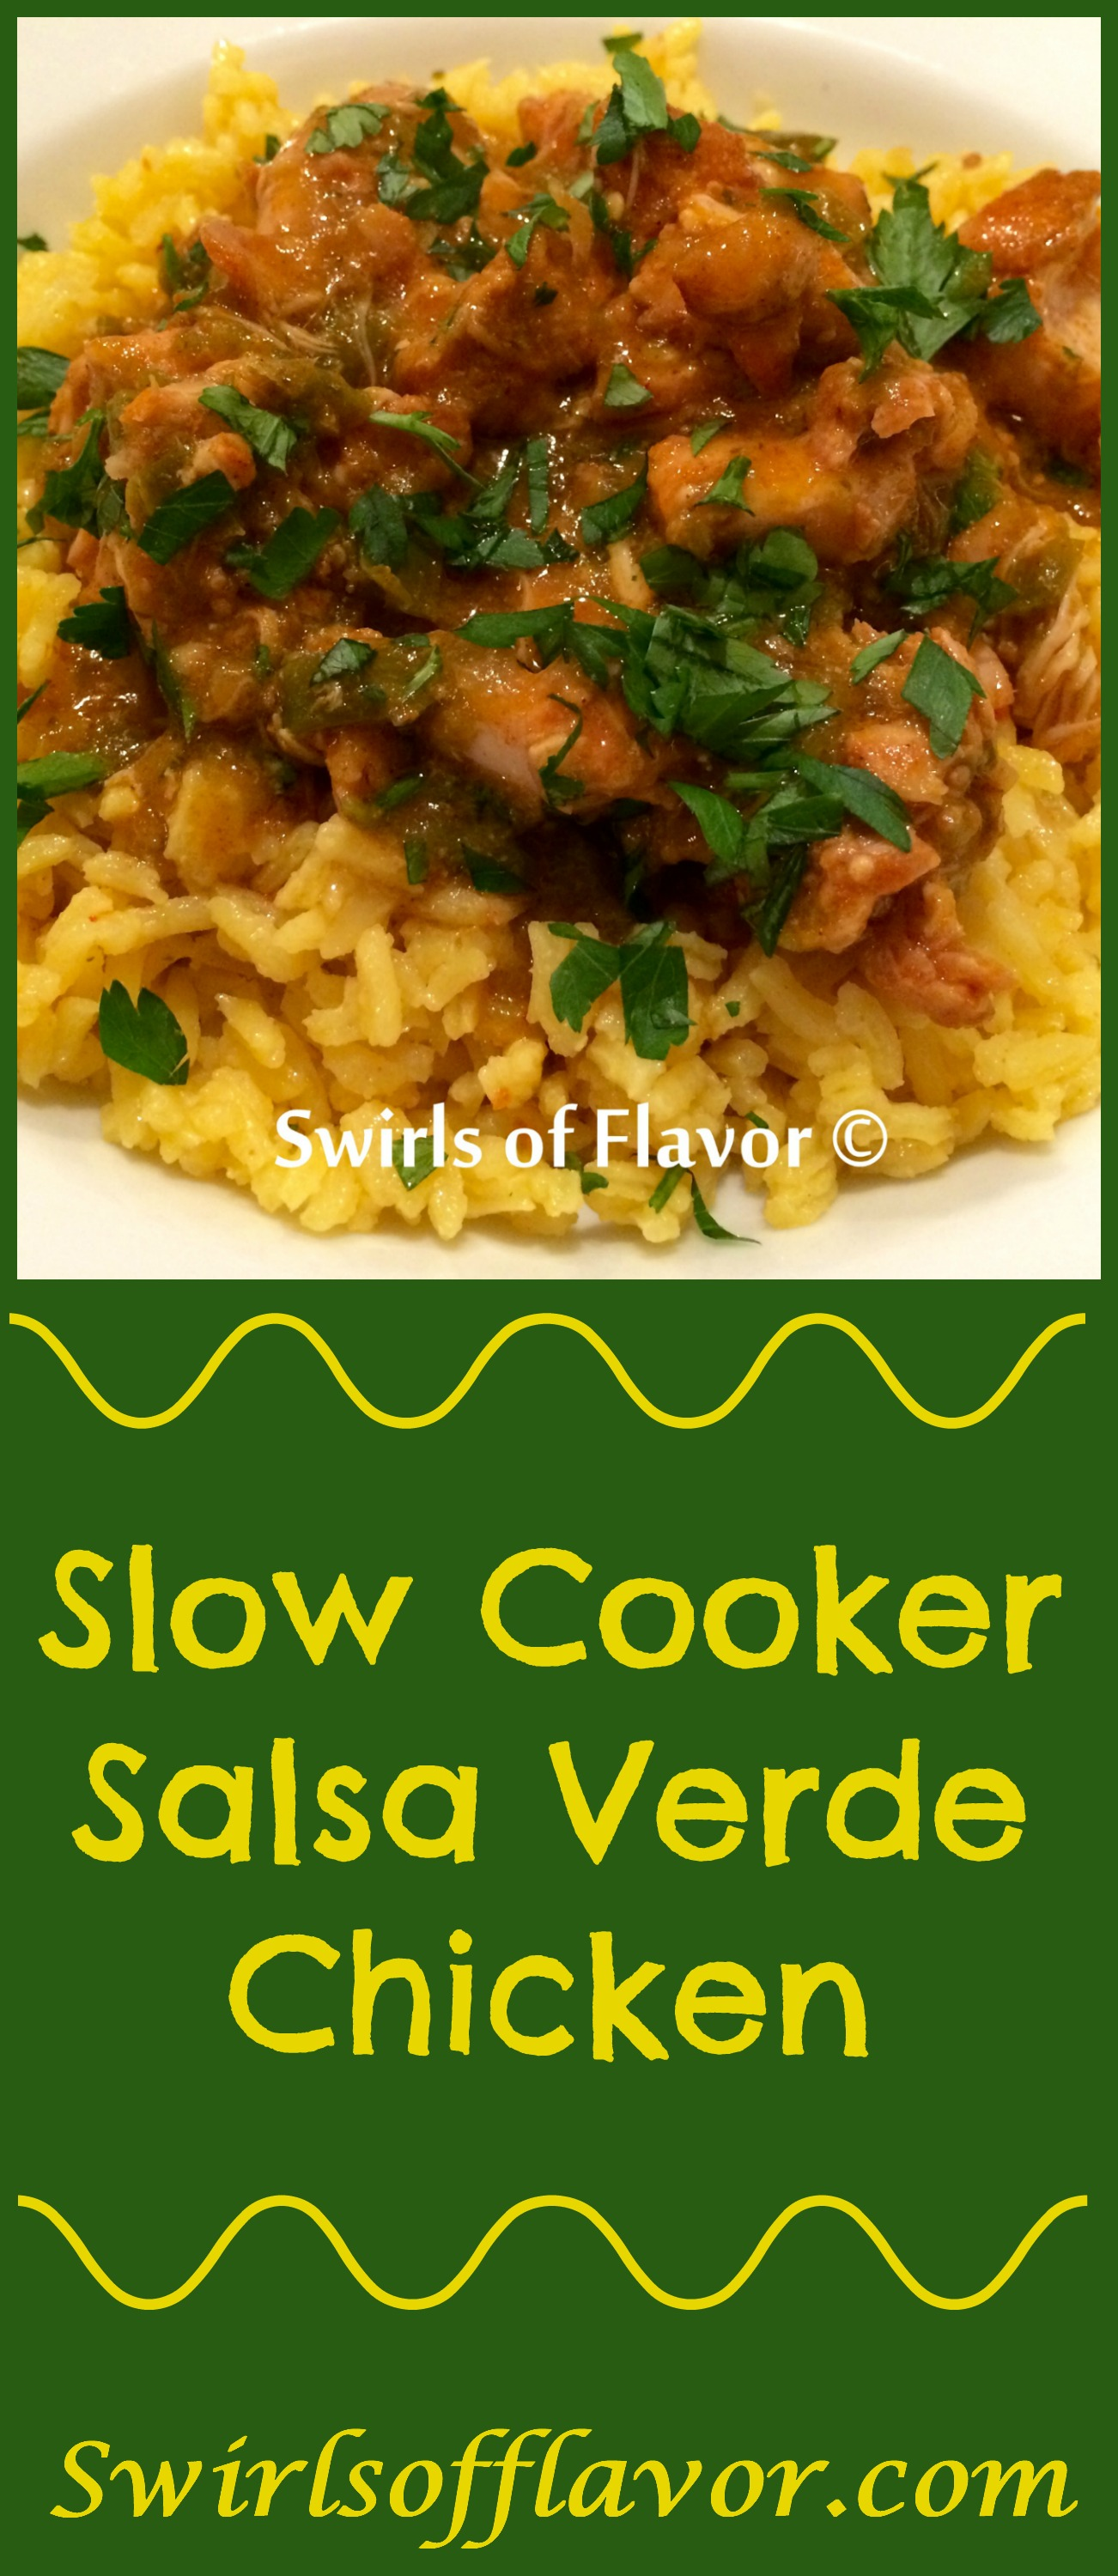 Slow Cooker Salsa Verde Chicken is as easy to make as it is delicious with just four ingredients, simmered in a slow cooker, served over rice! slow cooker | crockpot | chicken | easy | dinner | four ingredients | rice | Mexican | #swirlsofflavor